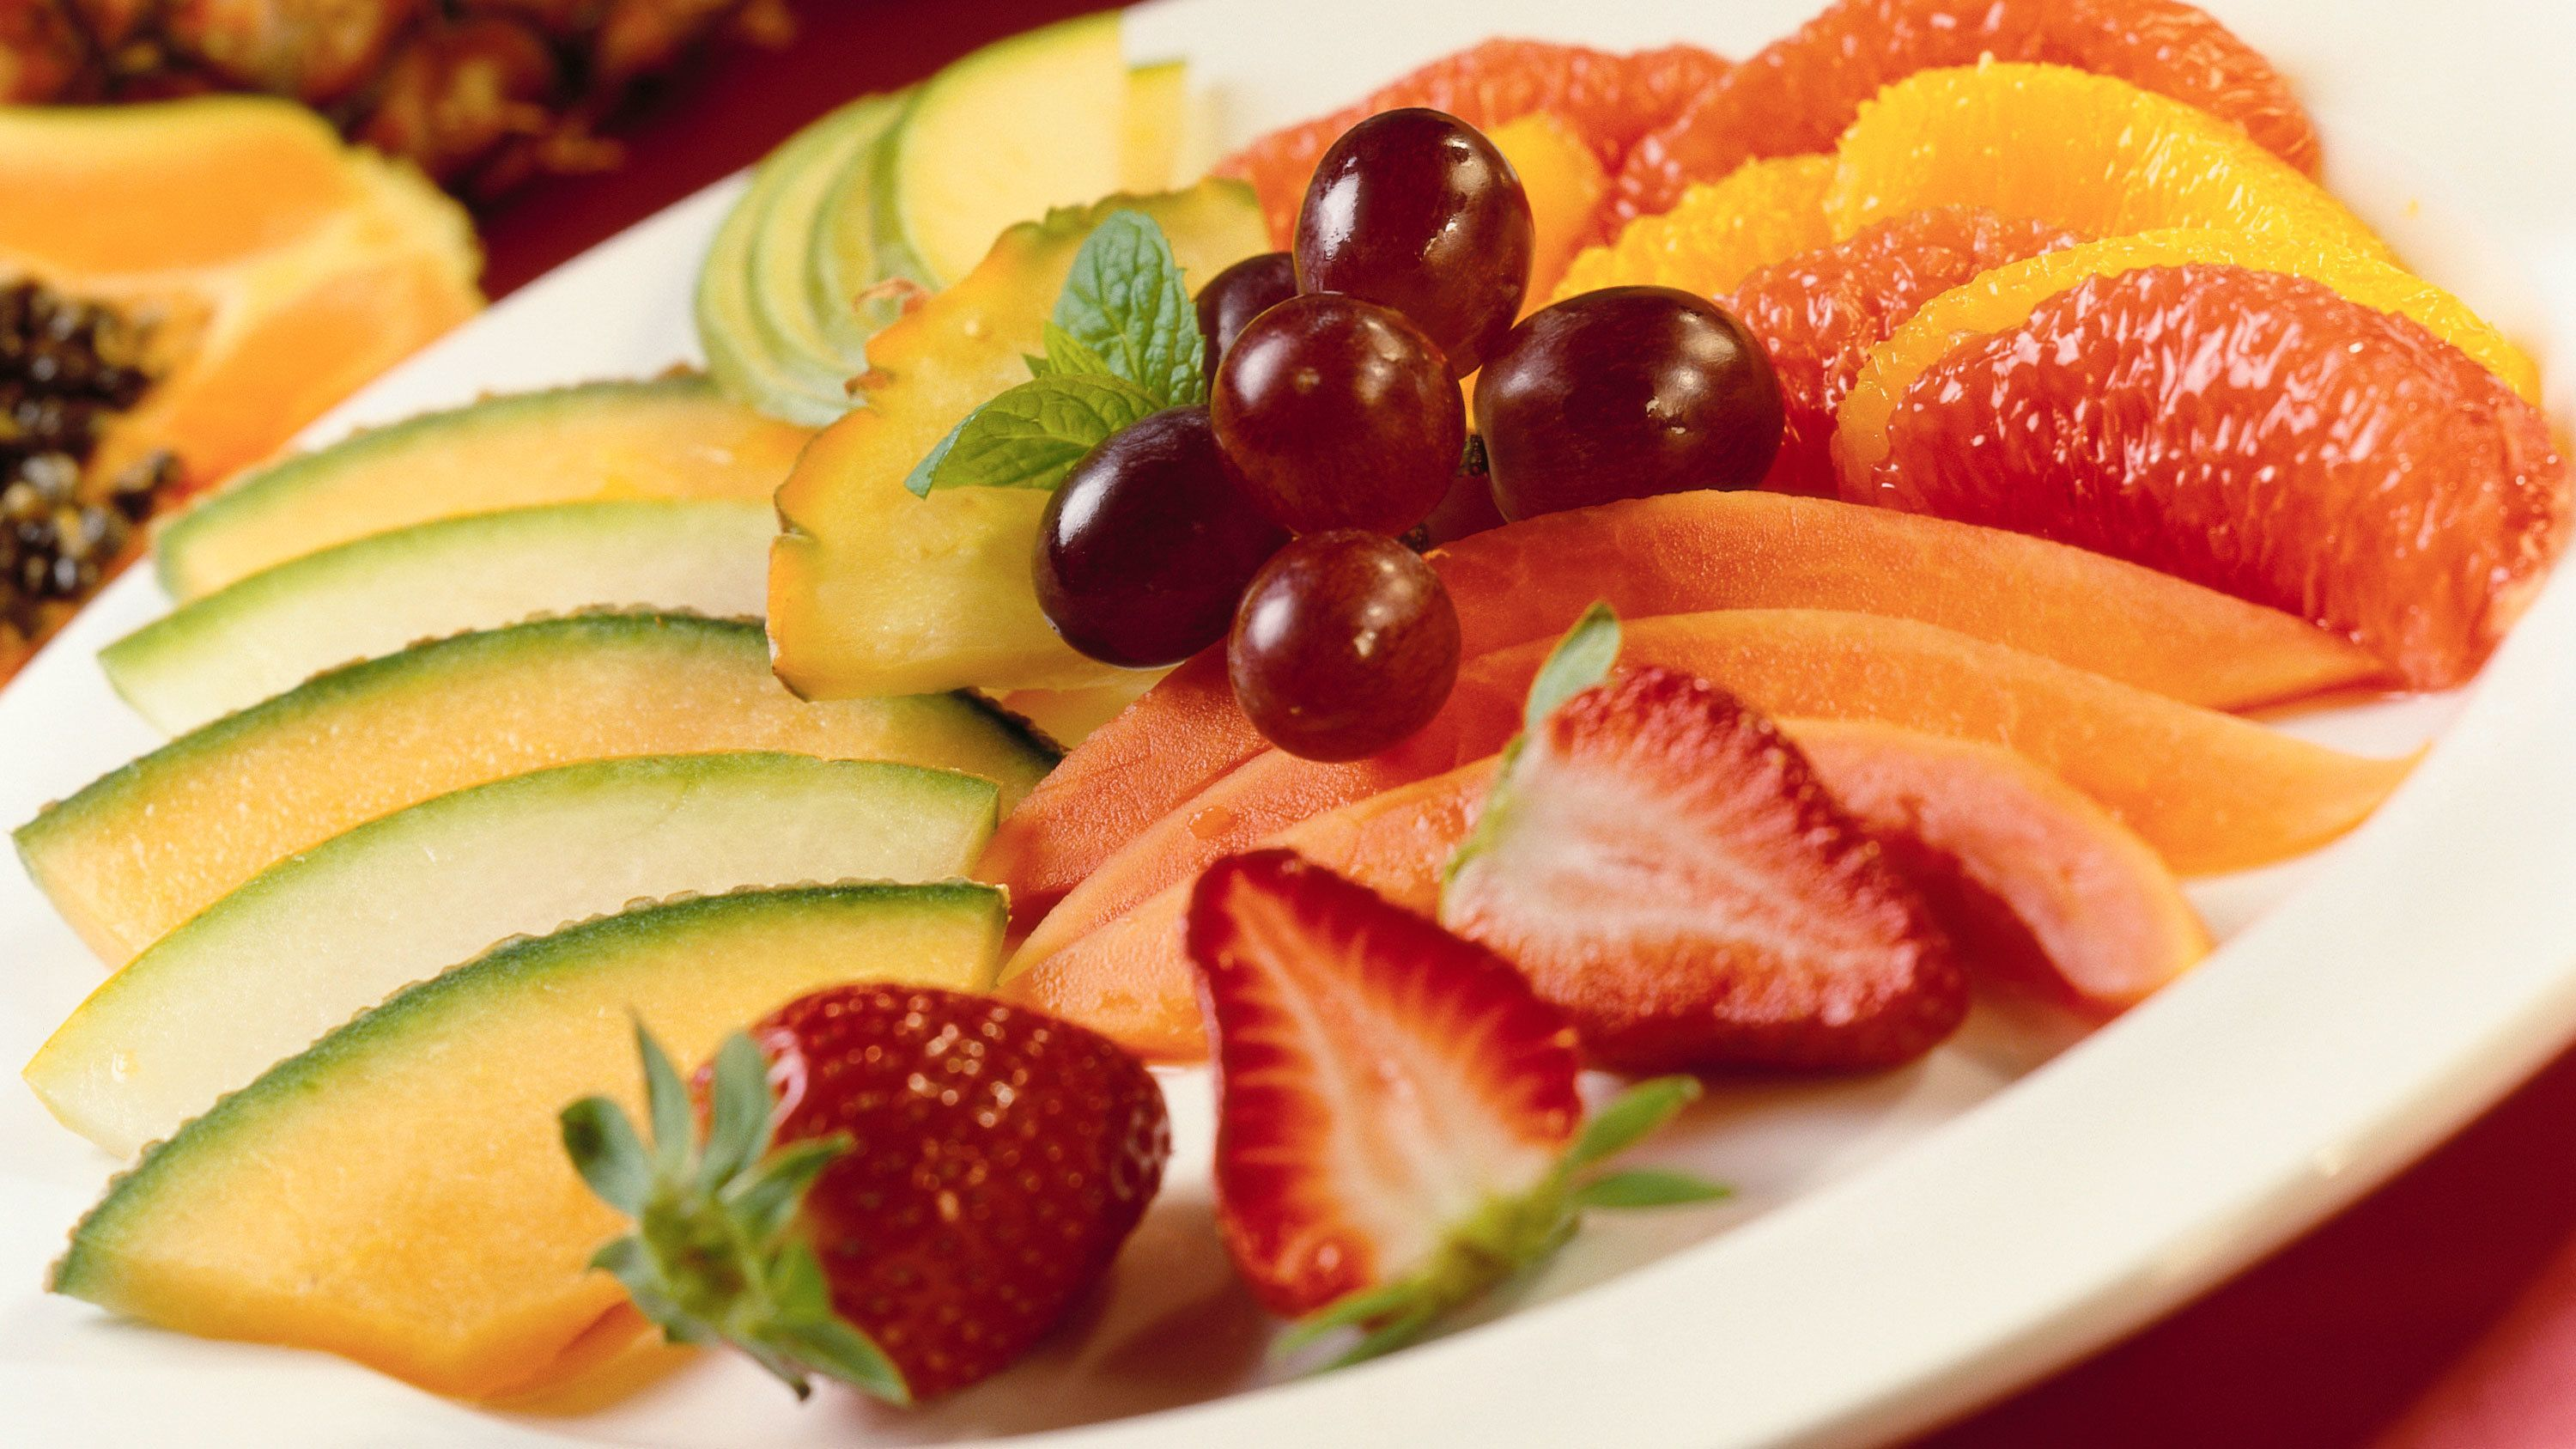 Assortment of fresh fruit on a plate.